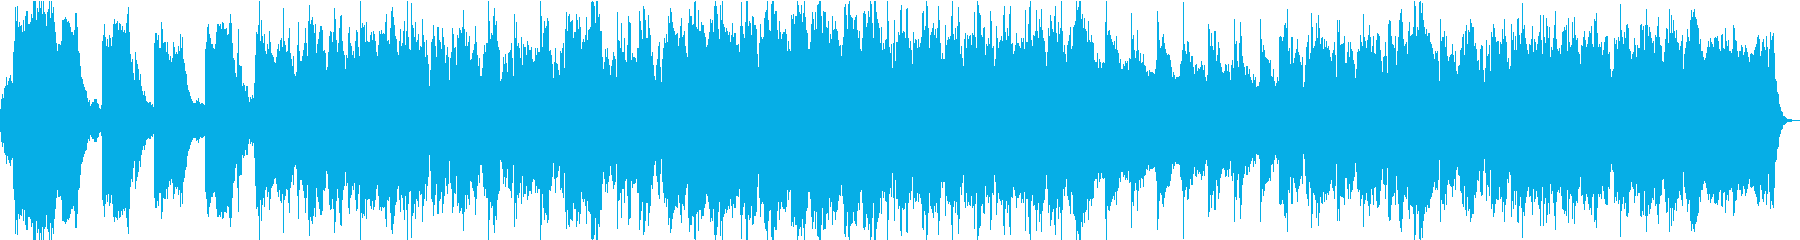 Movie Trailer Bulgarian Voice Chorus's reproduced waveform